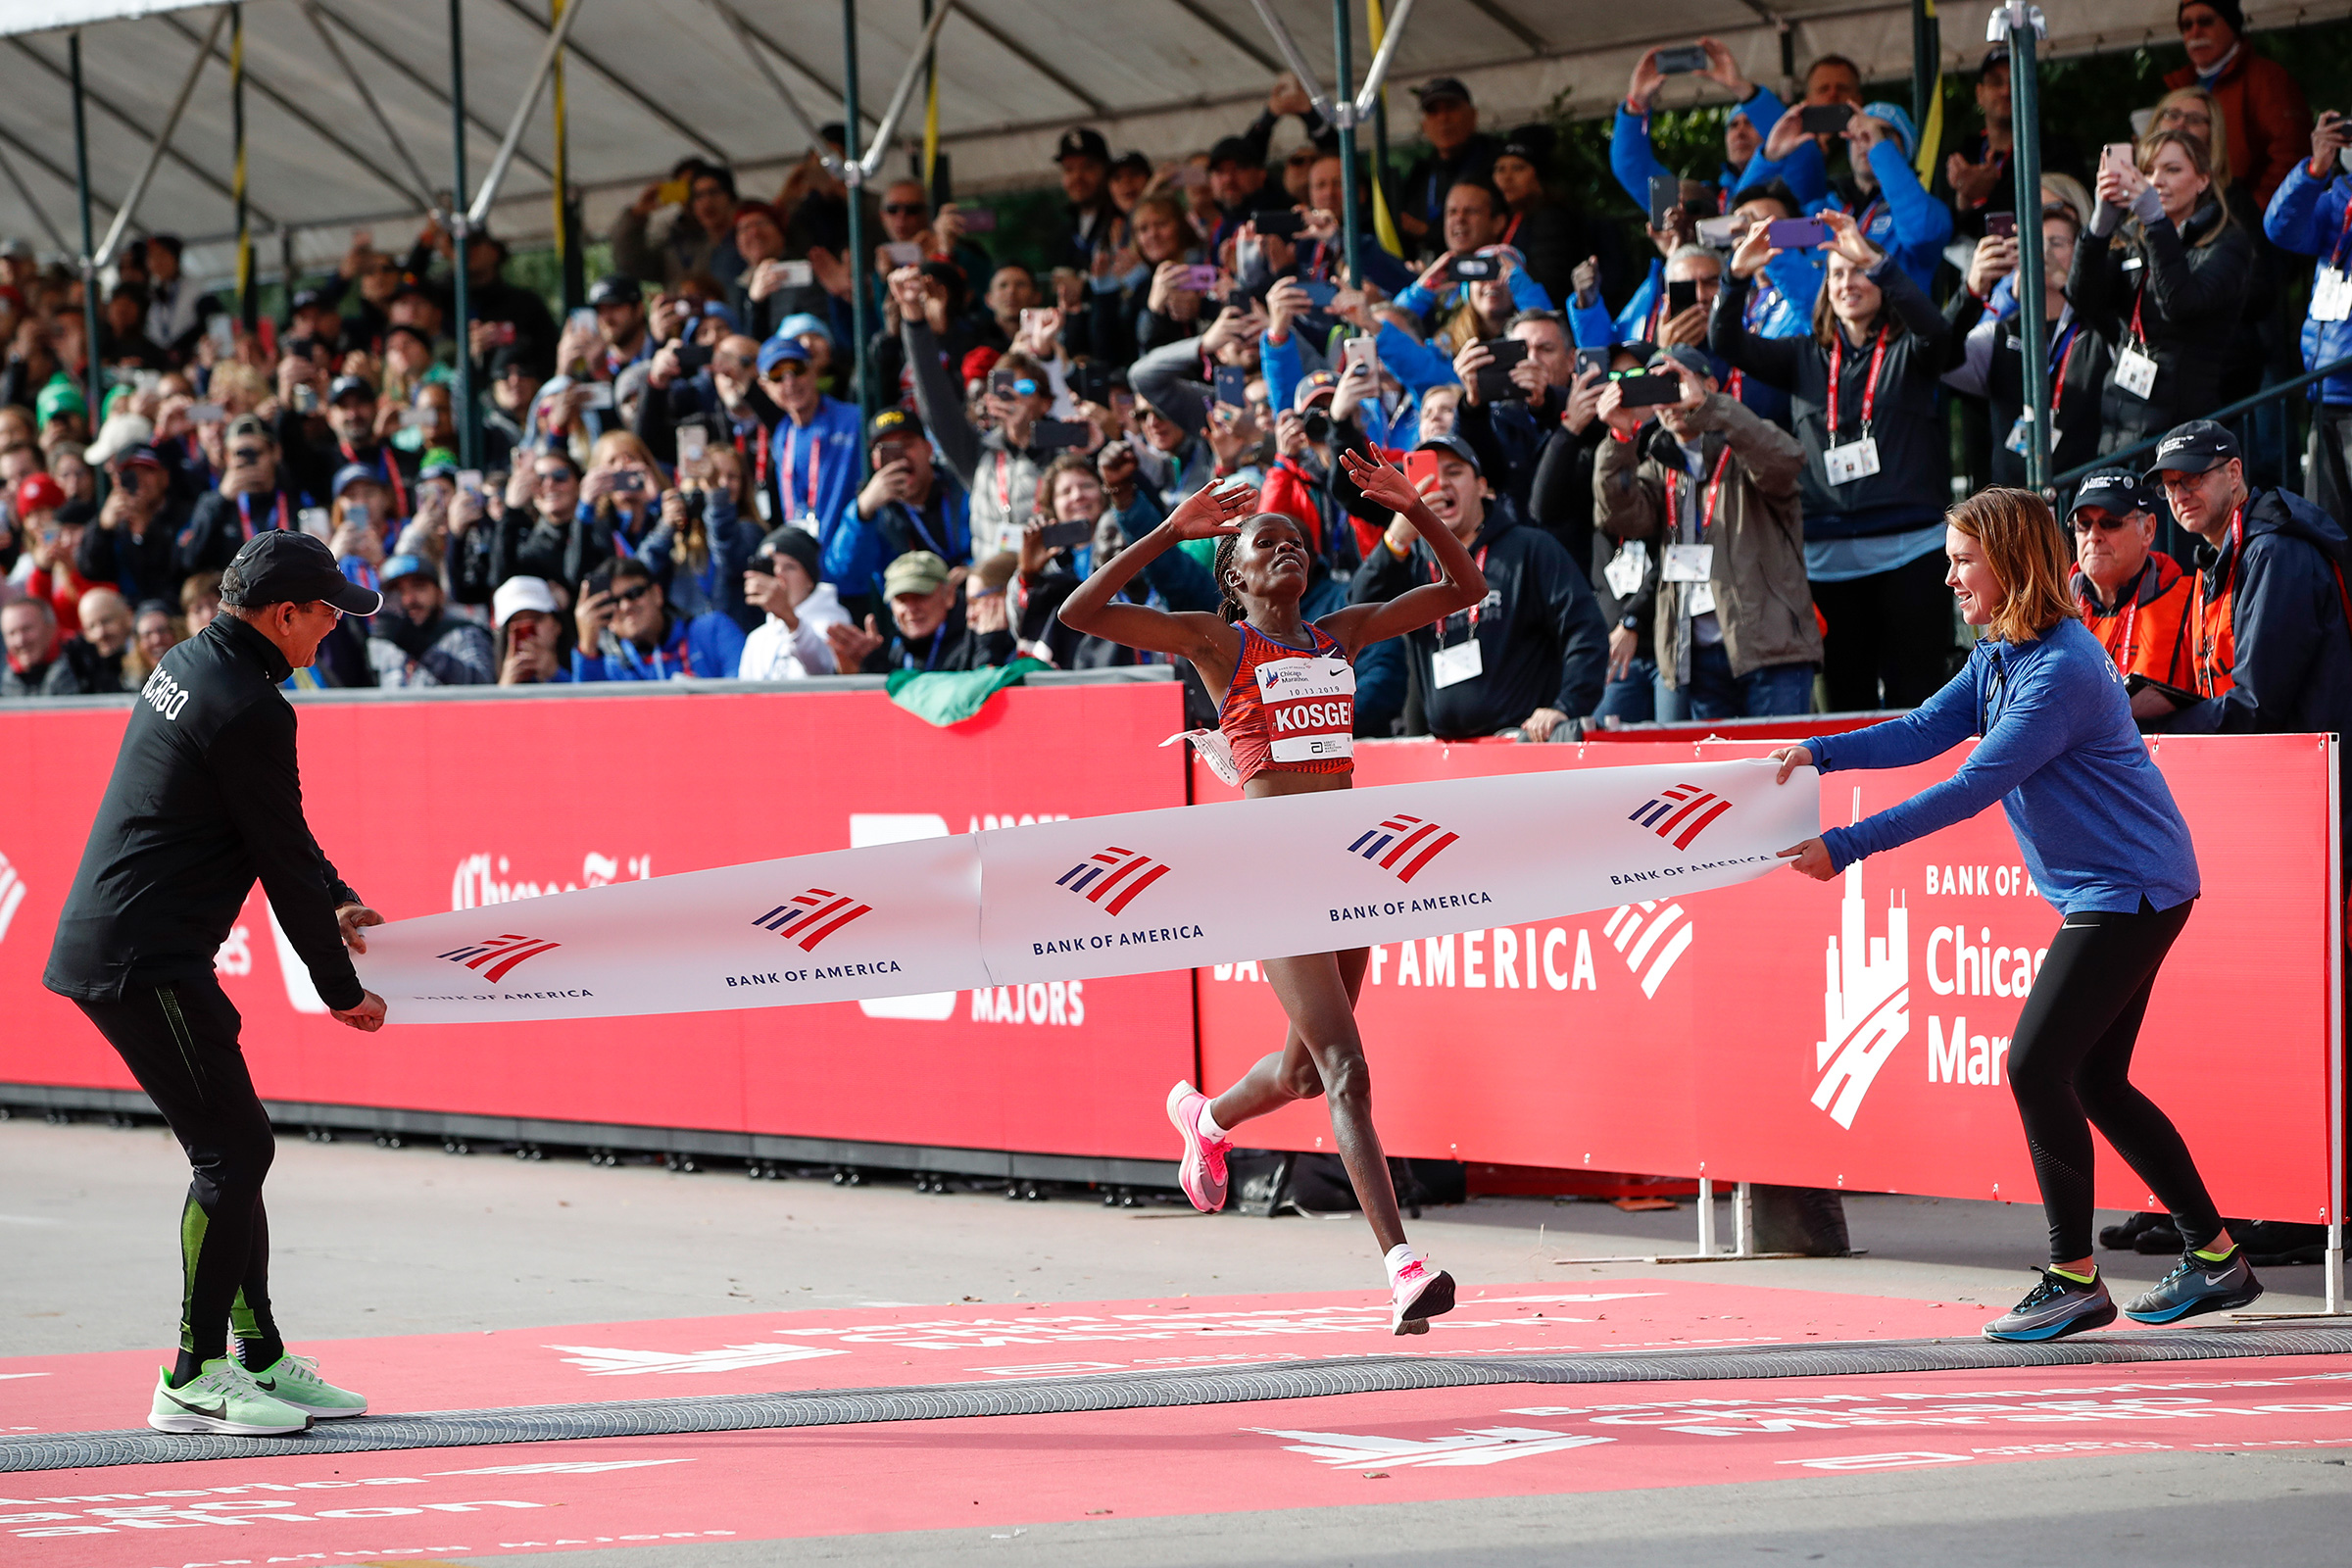 Kenya's Brigid Kosgei crosses the finish line as she wins the women's 2019 Bank of America Chicago Marathon on Oct. 13, 2019.